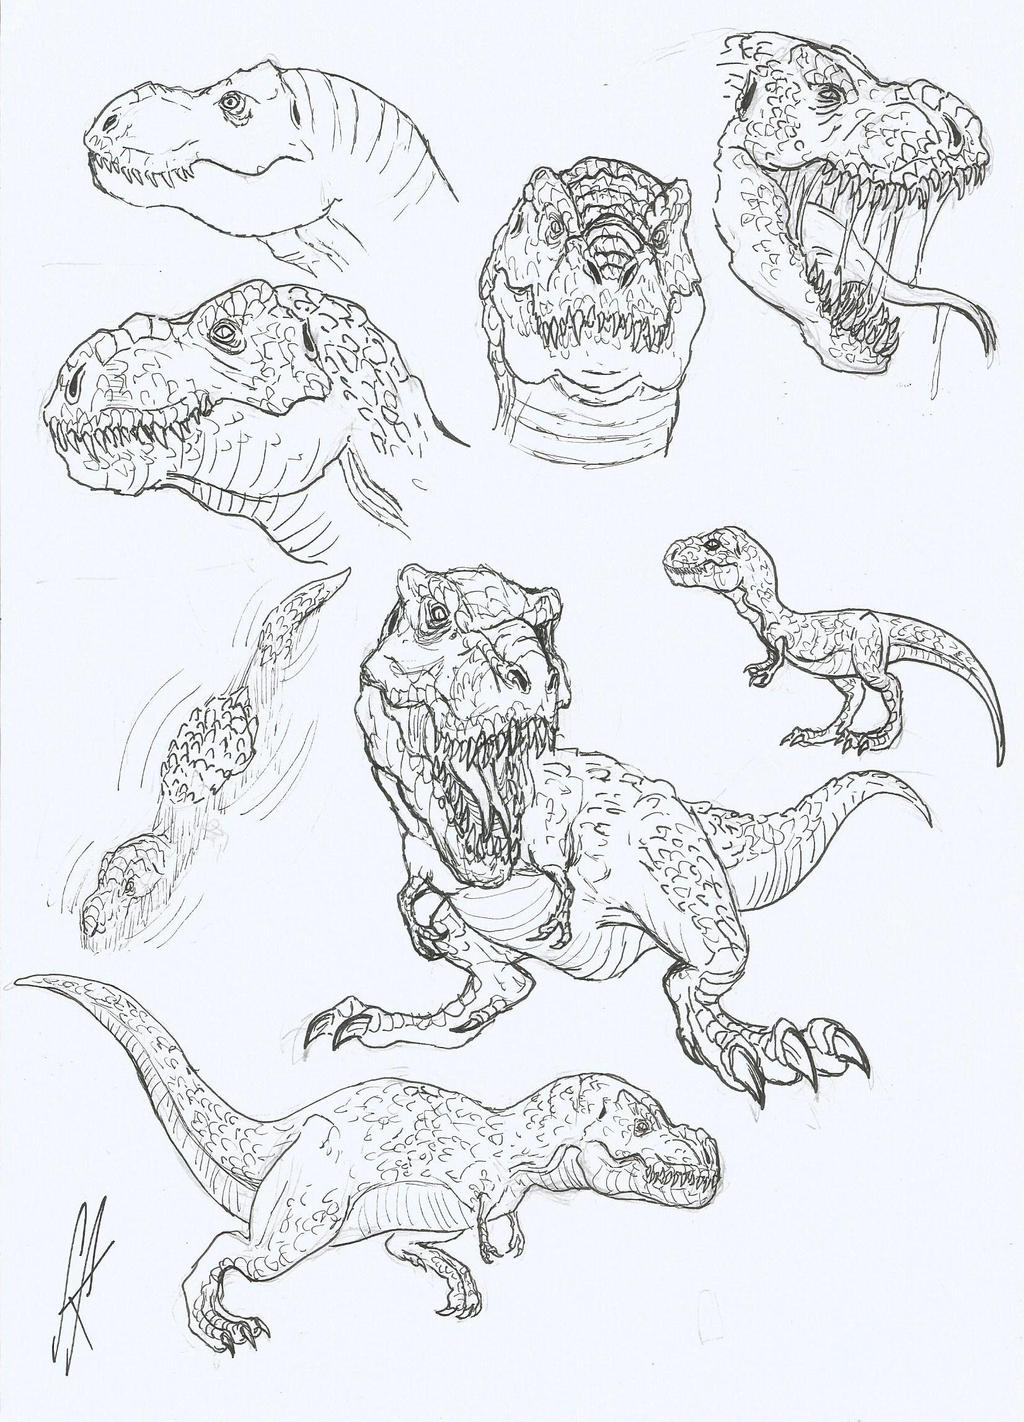 jp novel t rex by devilkais on deviantart